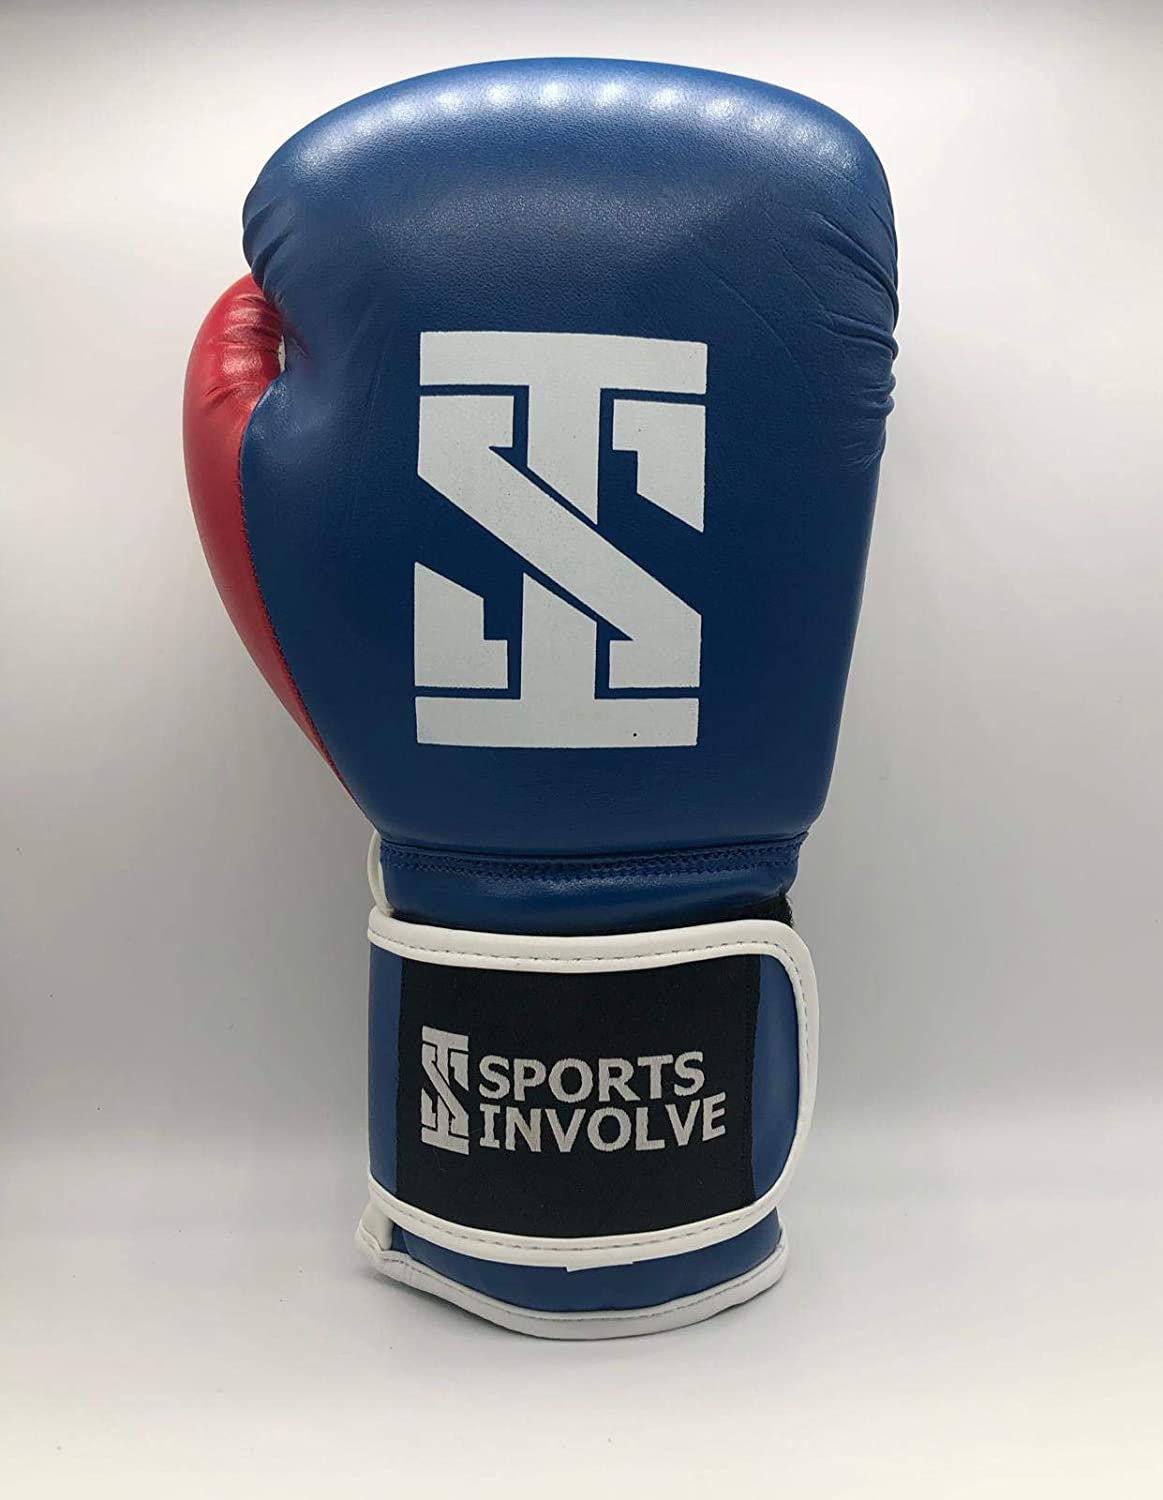 3X Professional Choice Boxhandschuhe Muay Thai Boxsack Fausthandschuhe Kickboxen Sparring Martial Arts Training